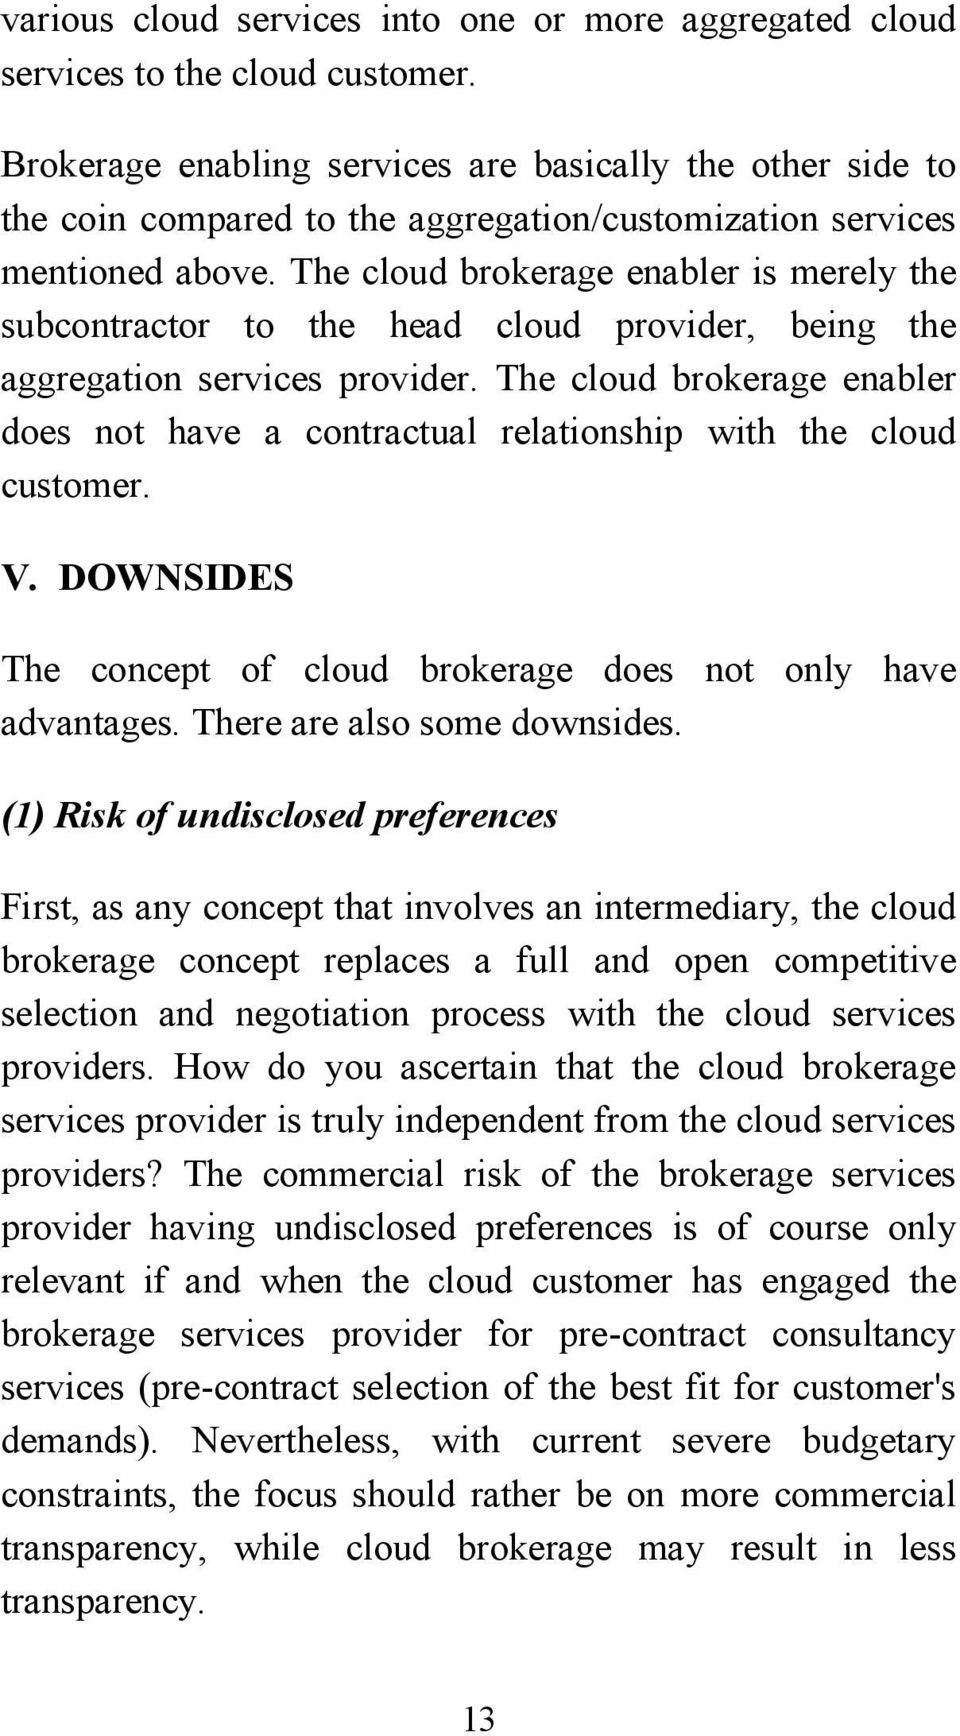 The cloud brokerage enabler is merely the subcontractor to the head cloud provider, being the aggregation services provider.